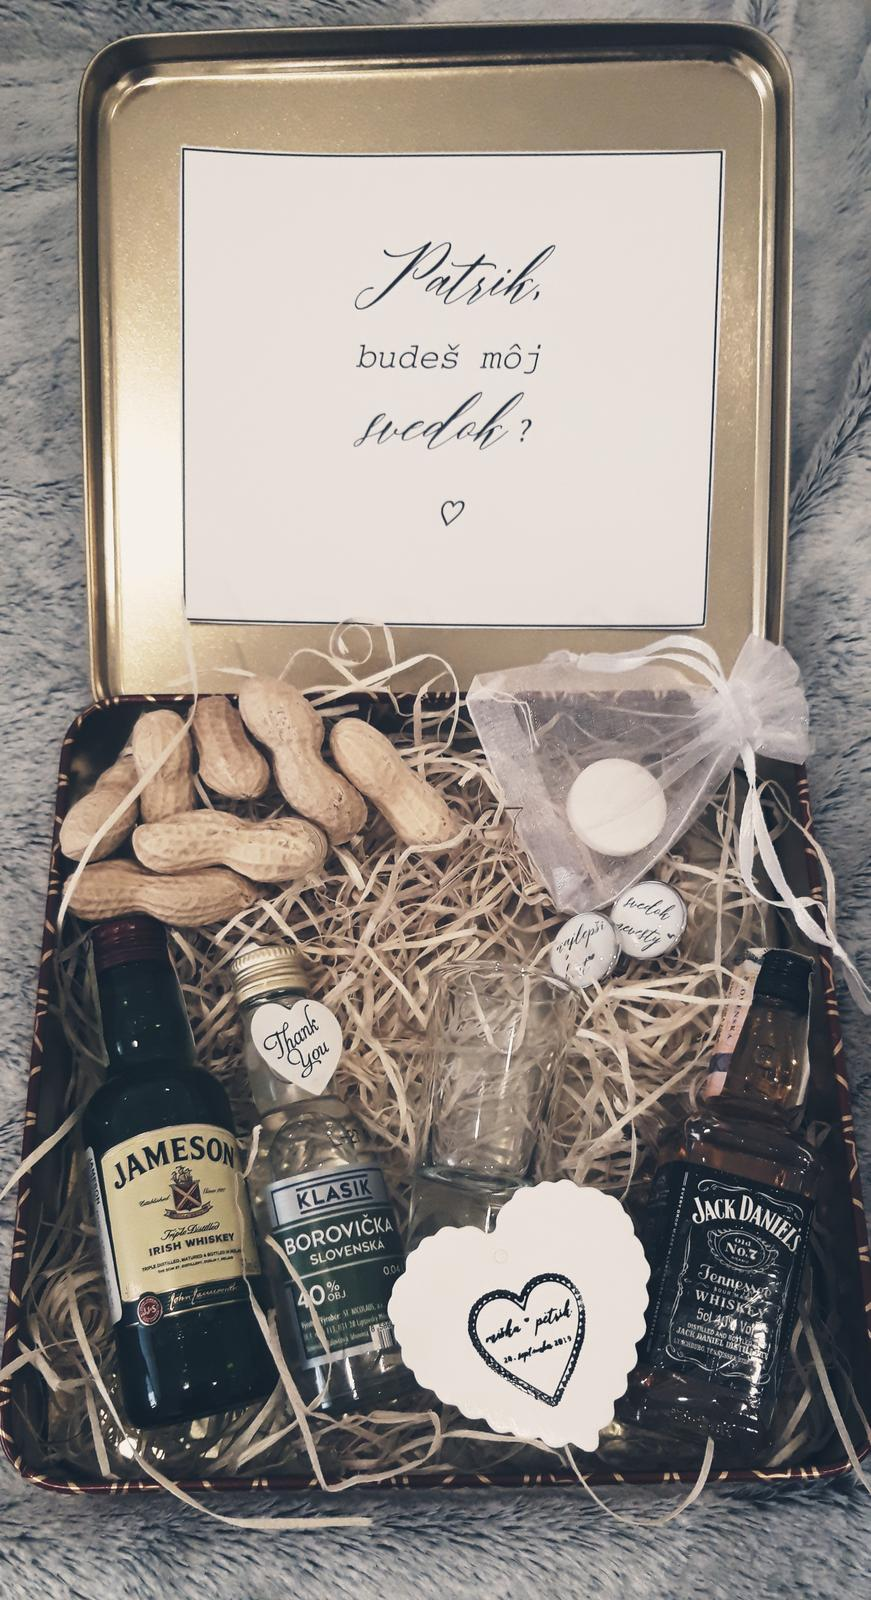 M∞P wedding ideas - proposal best man